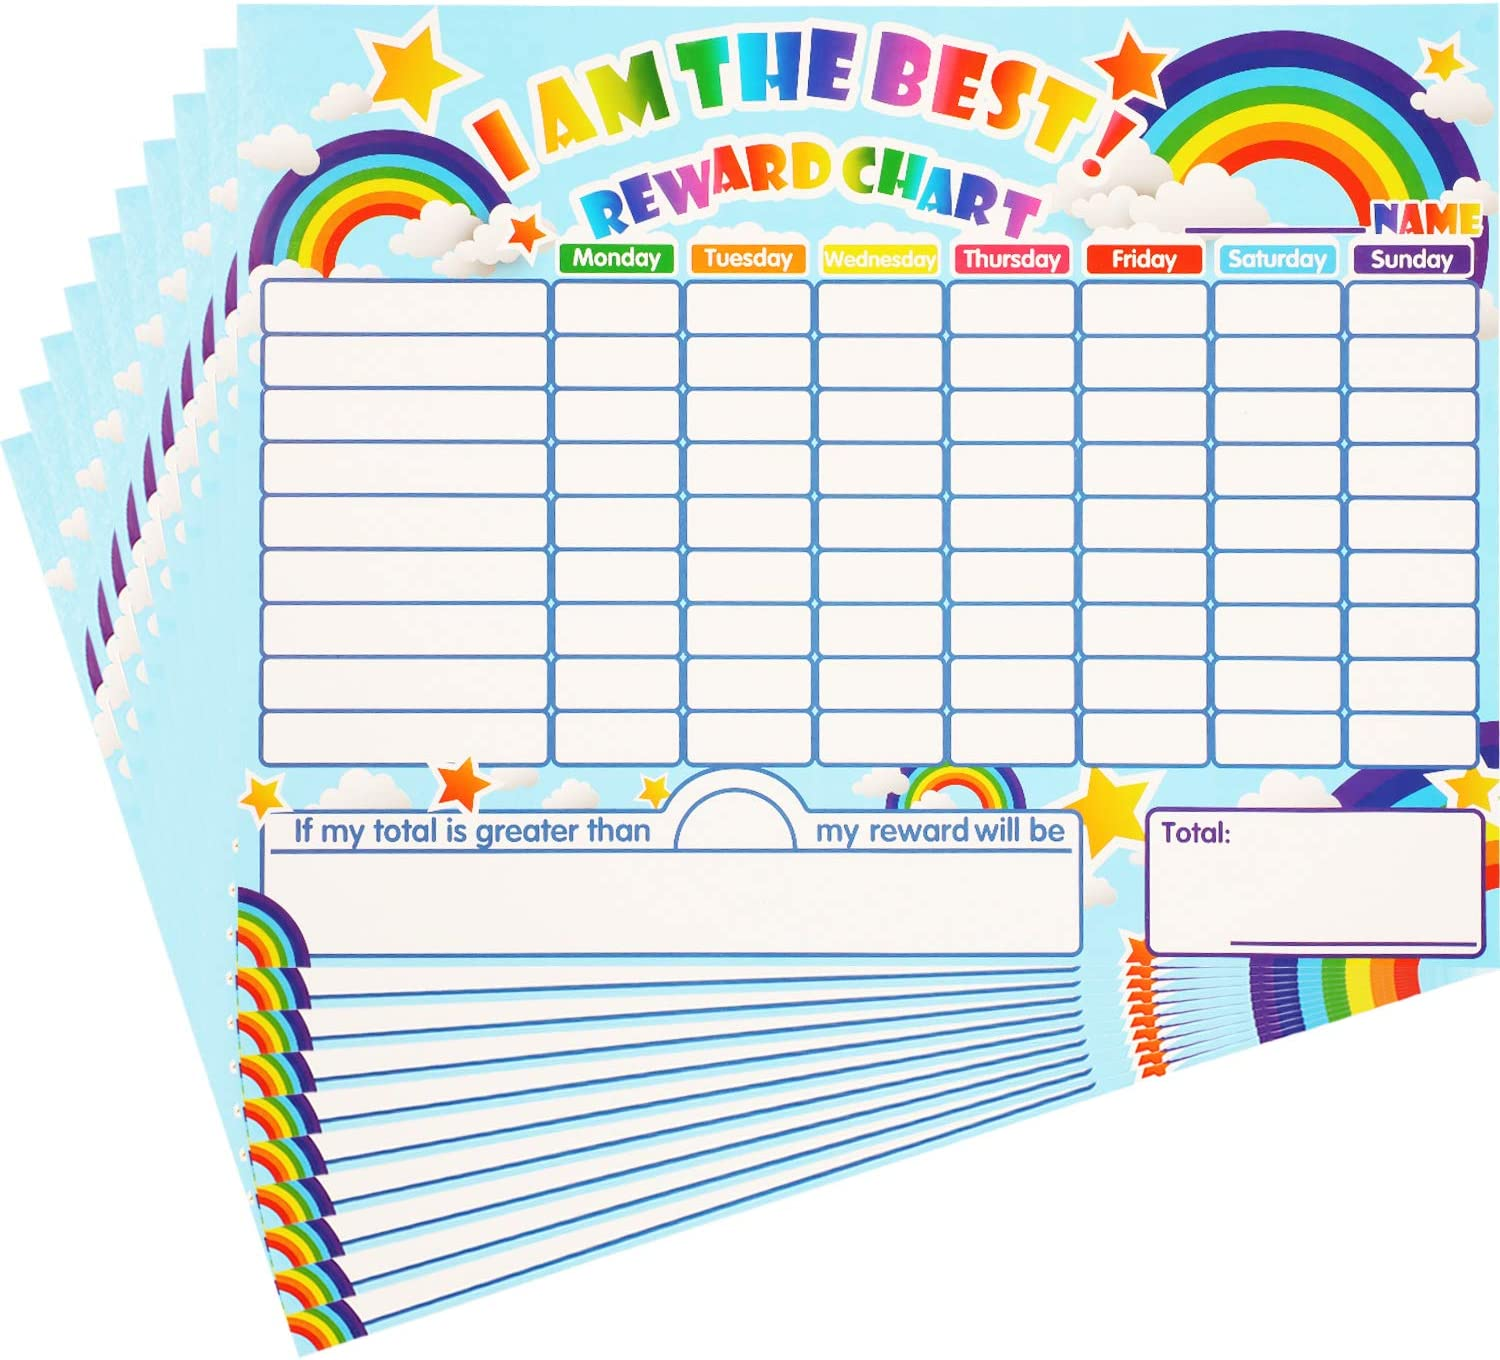 Reward Chore Chart Dry Erase Behavior Chart Learning Responsibility Star Chart Reusable Self-Adhesive Reward Chart for Children in Home and Classroom Learning, 14.5 x 11 Inches (10 Pieces)